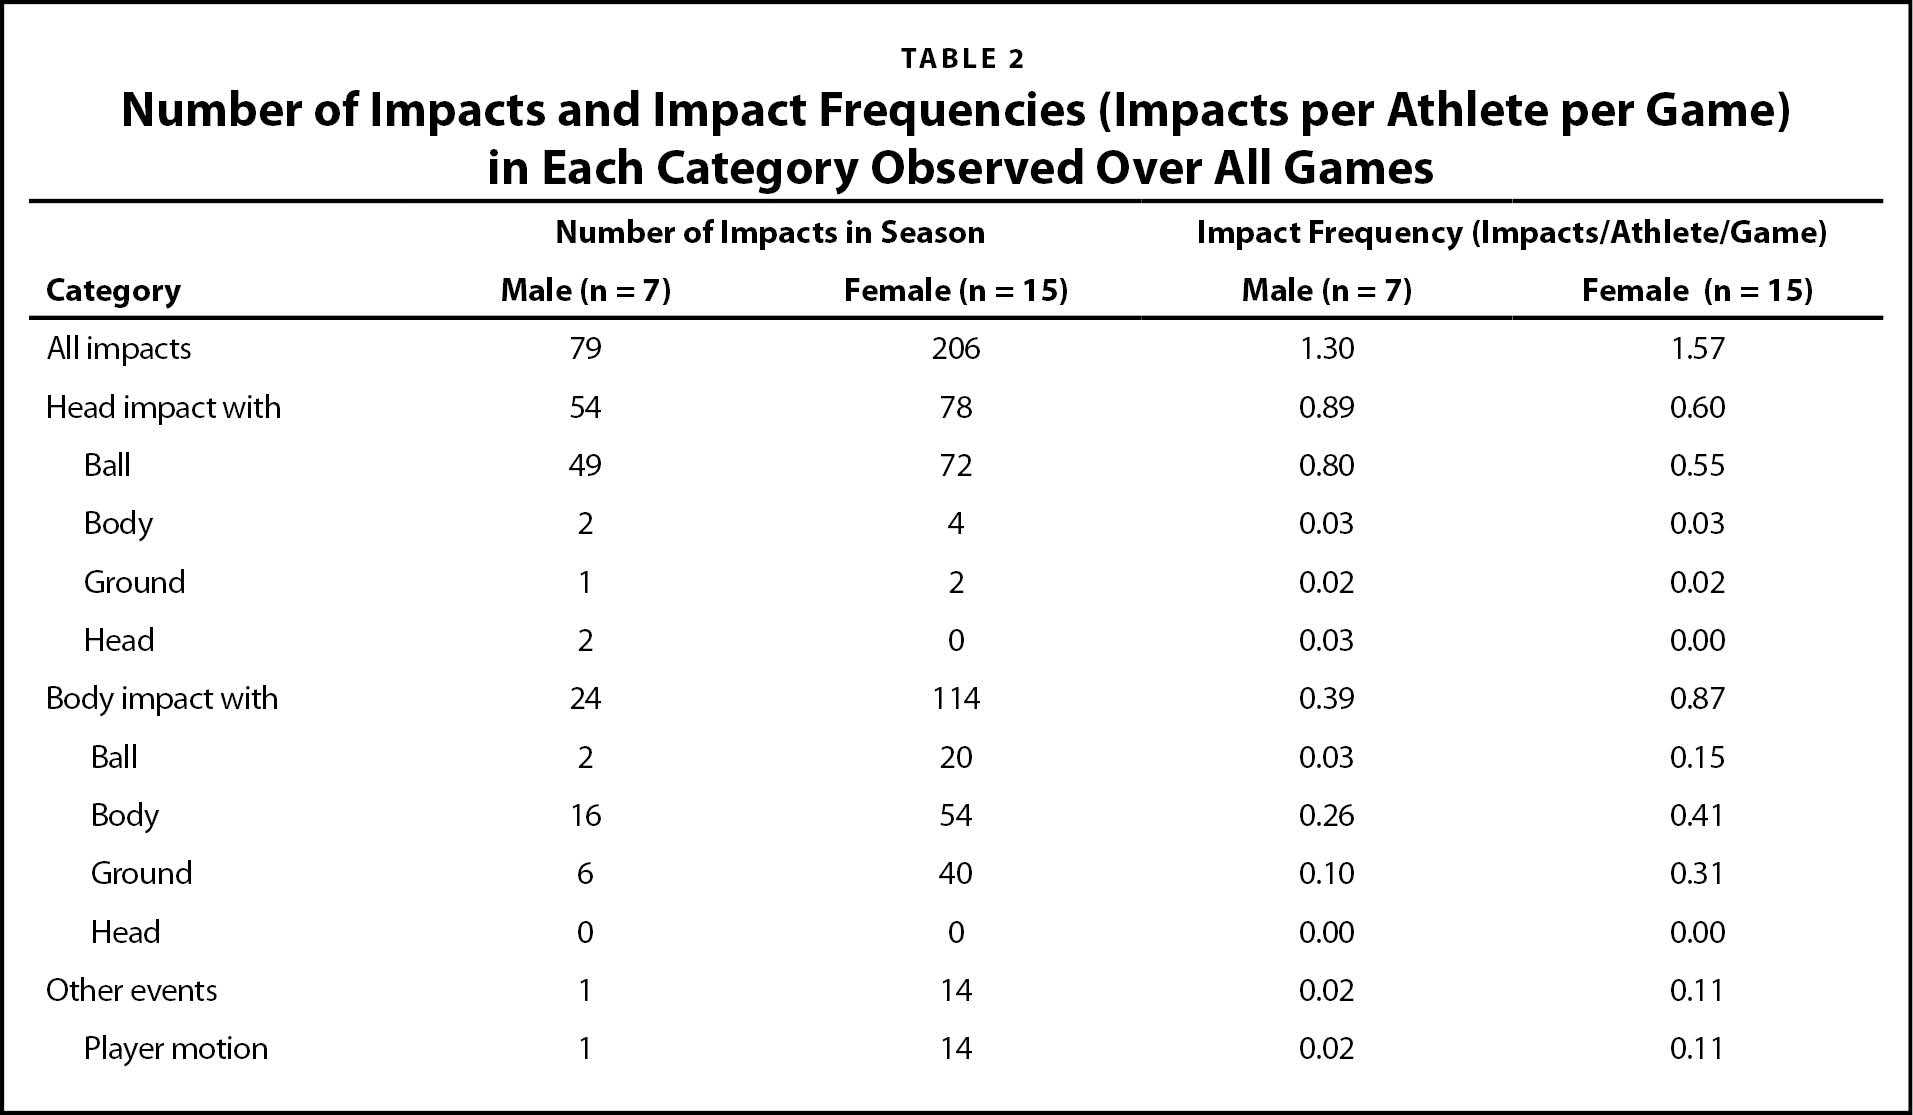 Number of Impacts and Impact Frequencies (Impacts per Athlete per Game) in Each Category Observed Over All Games